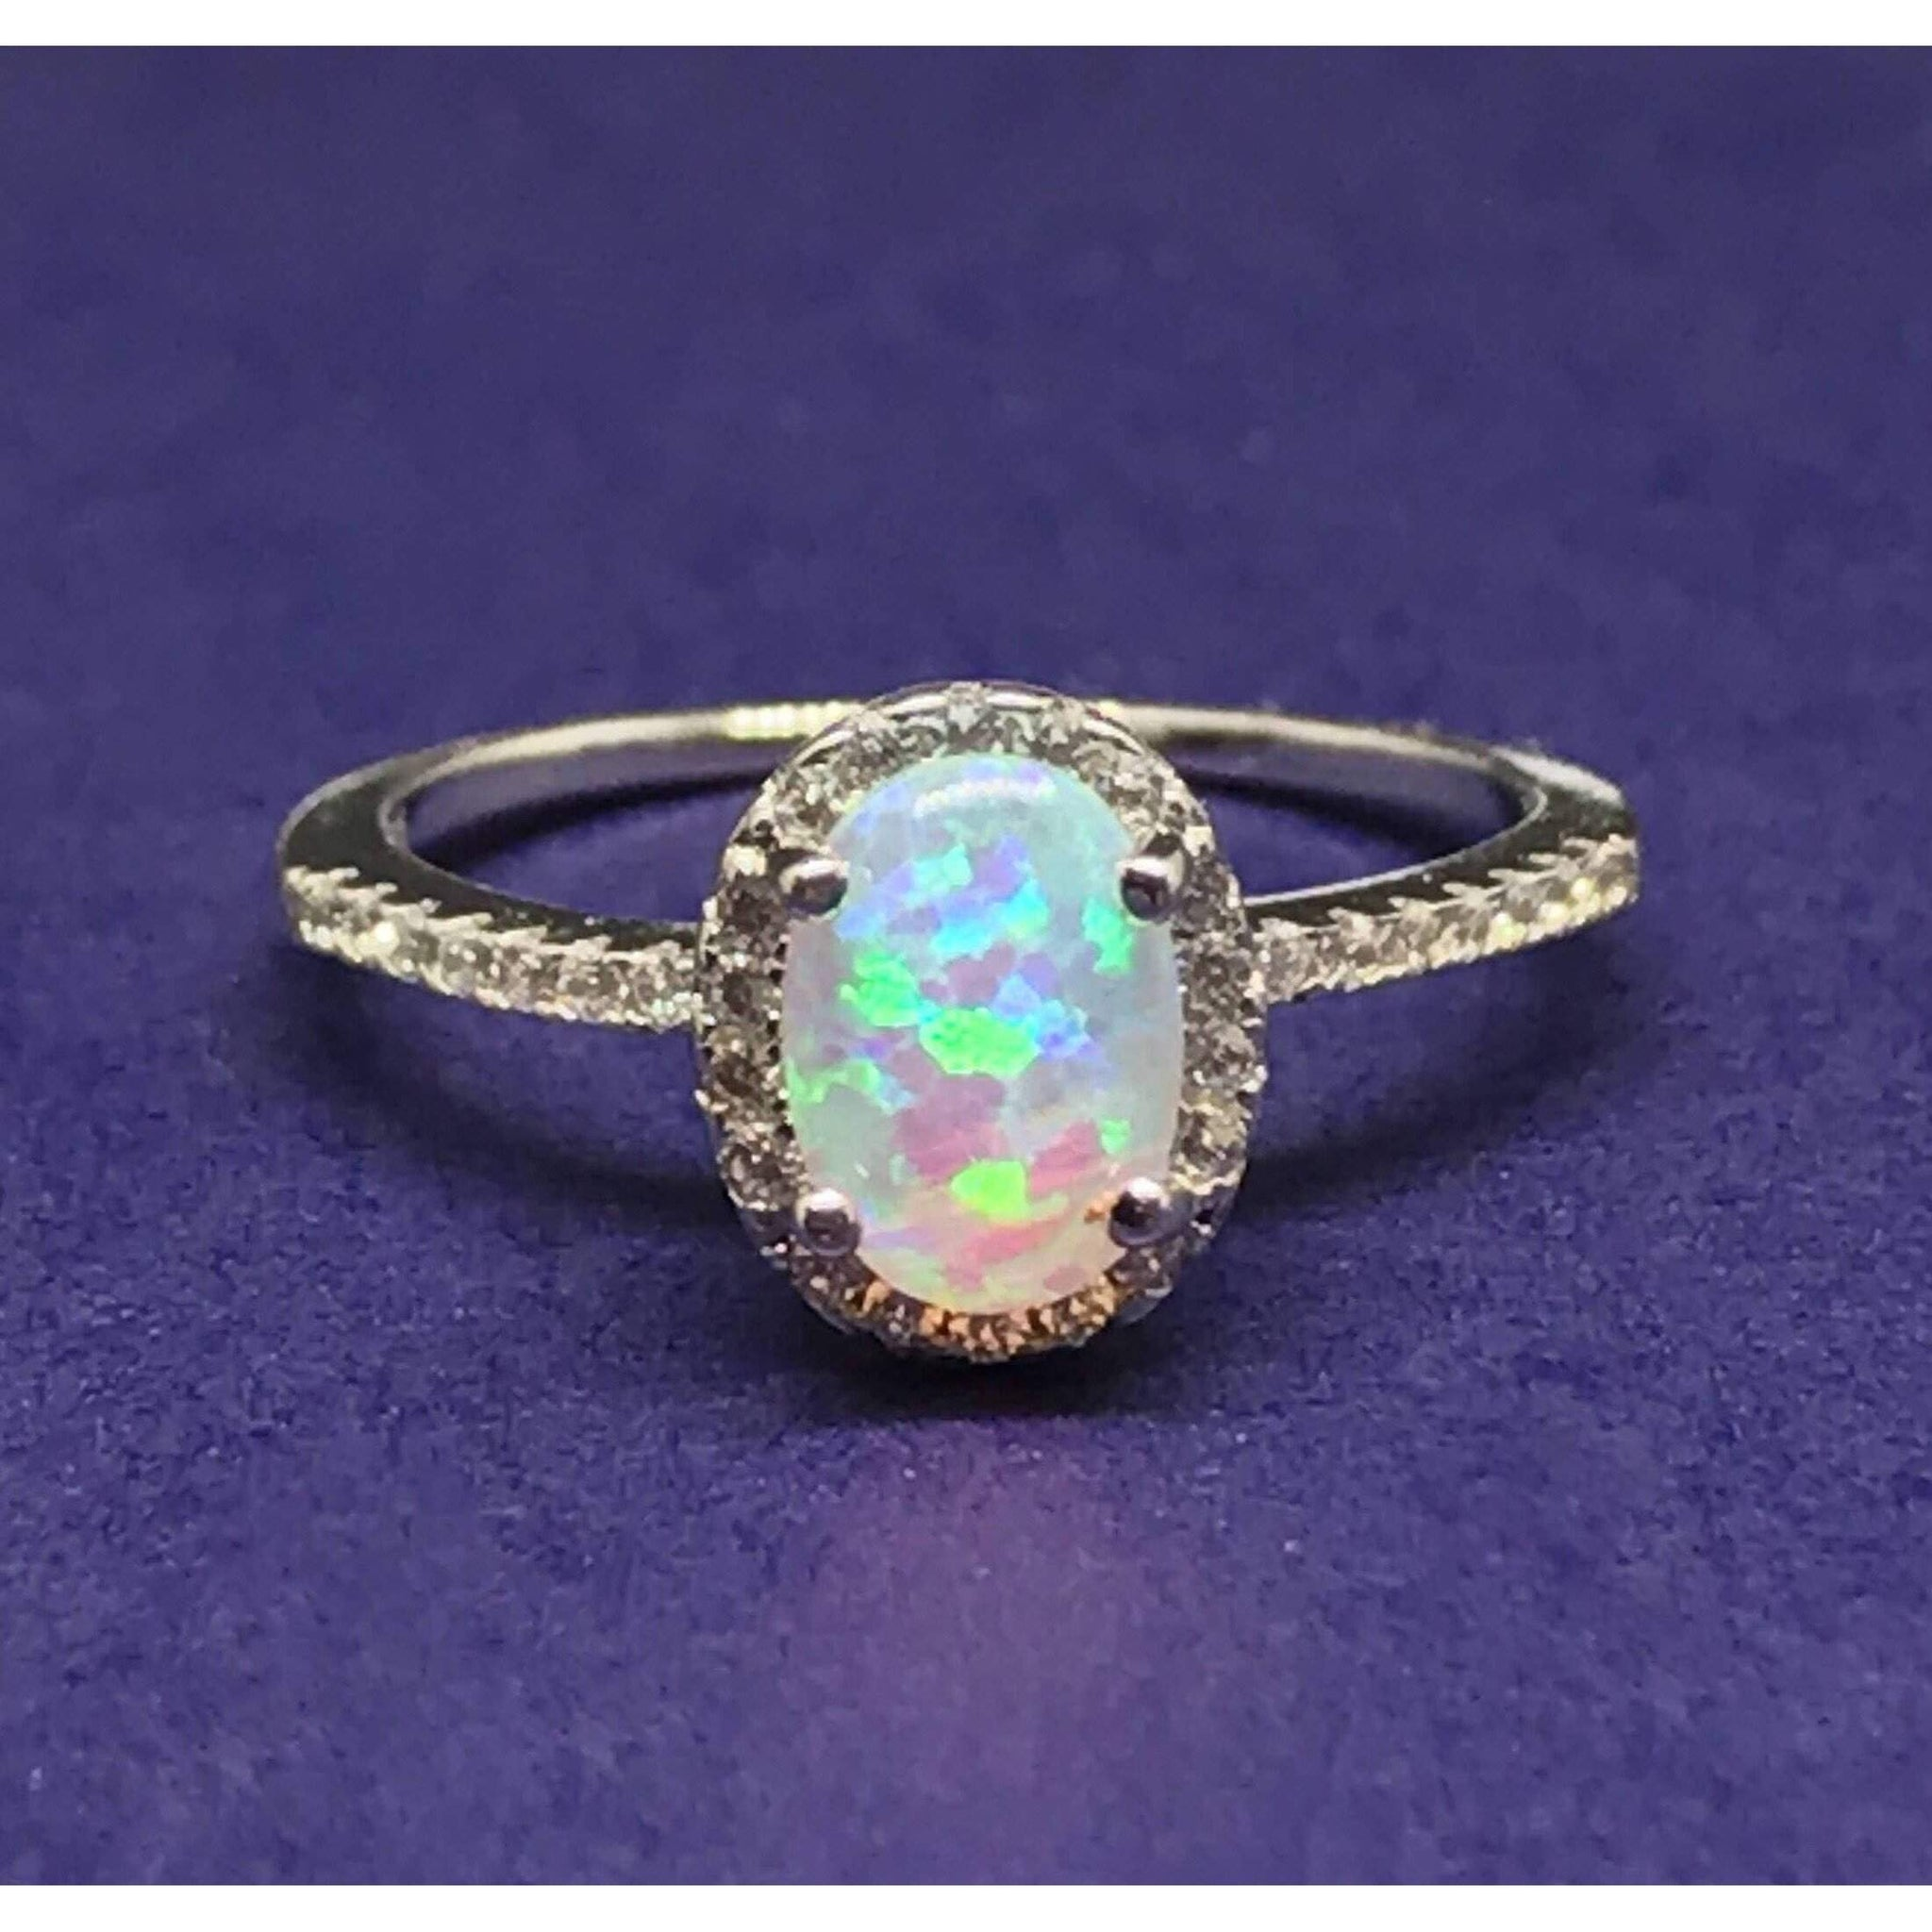 rings mermaid diamond engagement co brit is enchanted rose princess zales disney inspired belle collection ring princesses by